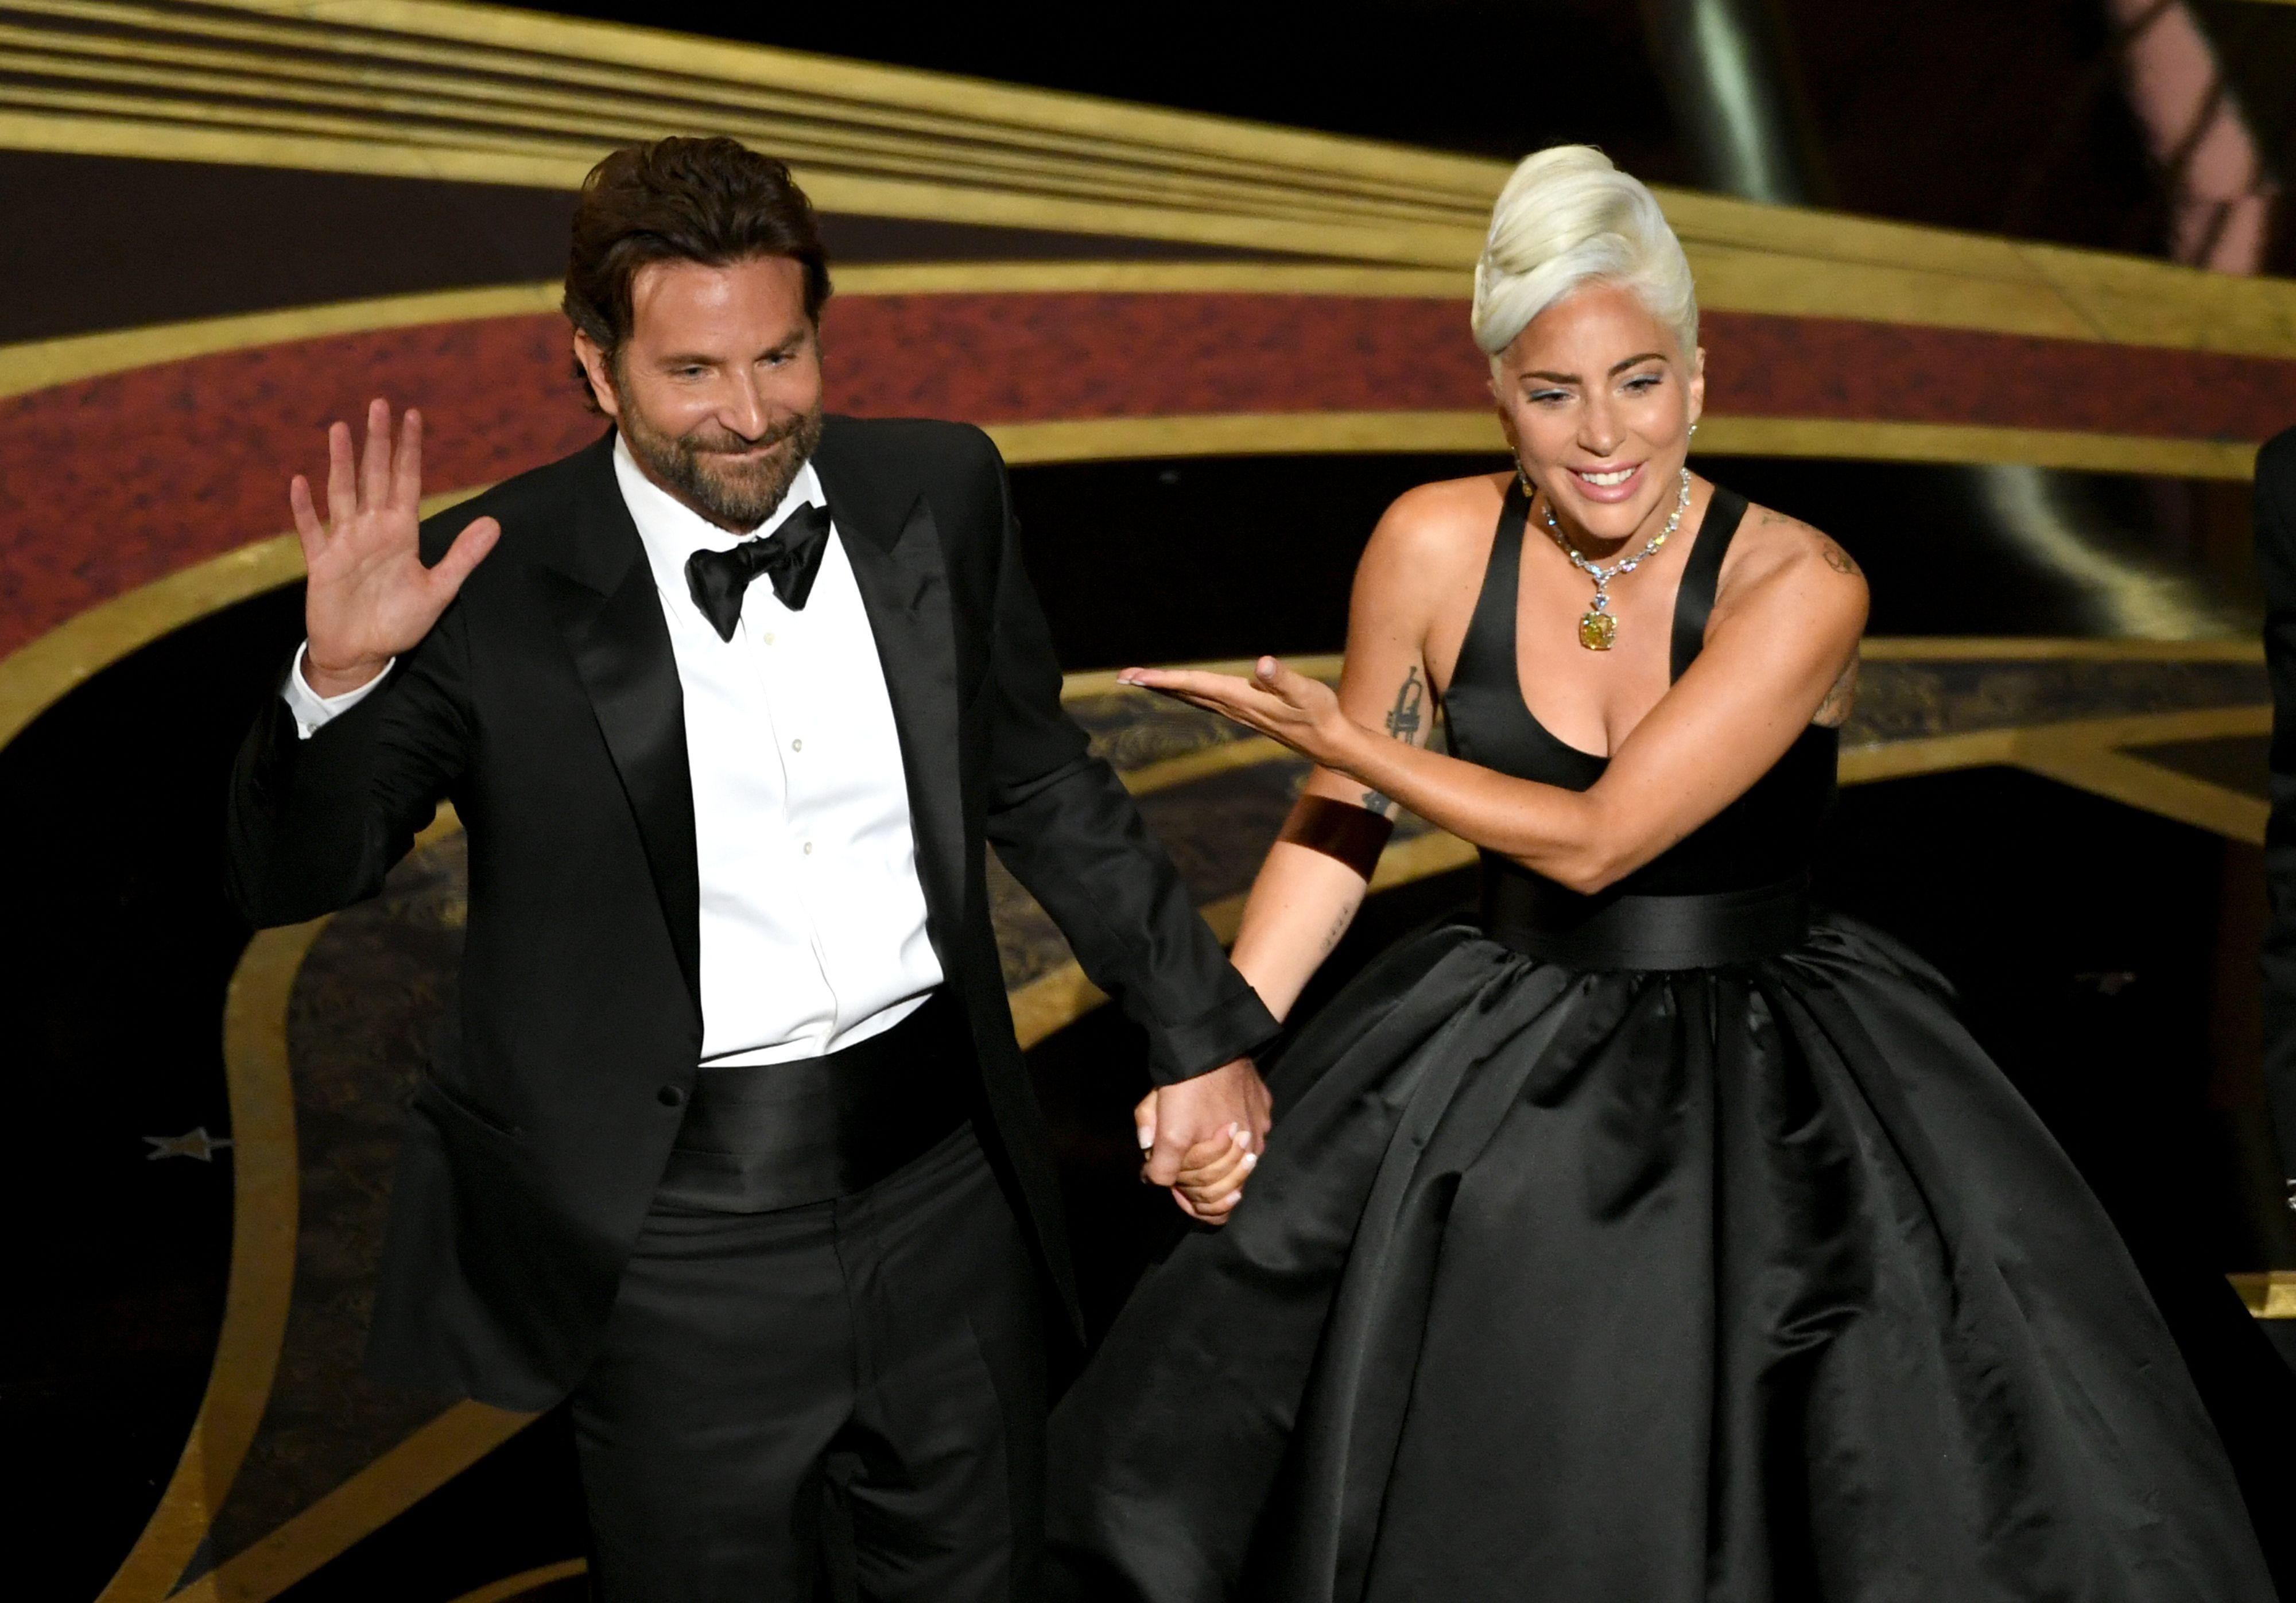 Lady Gaga and Bradley Cooper Just Performed 'Shallow' at the Oscars and Twitter Is Flipping the F*ck Out